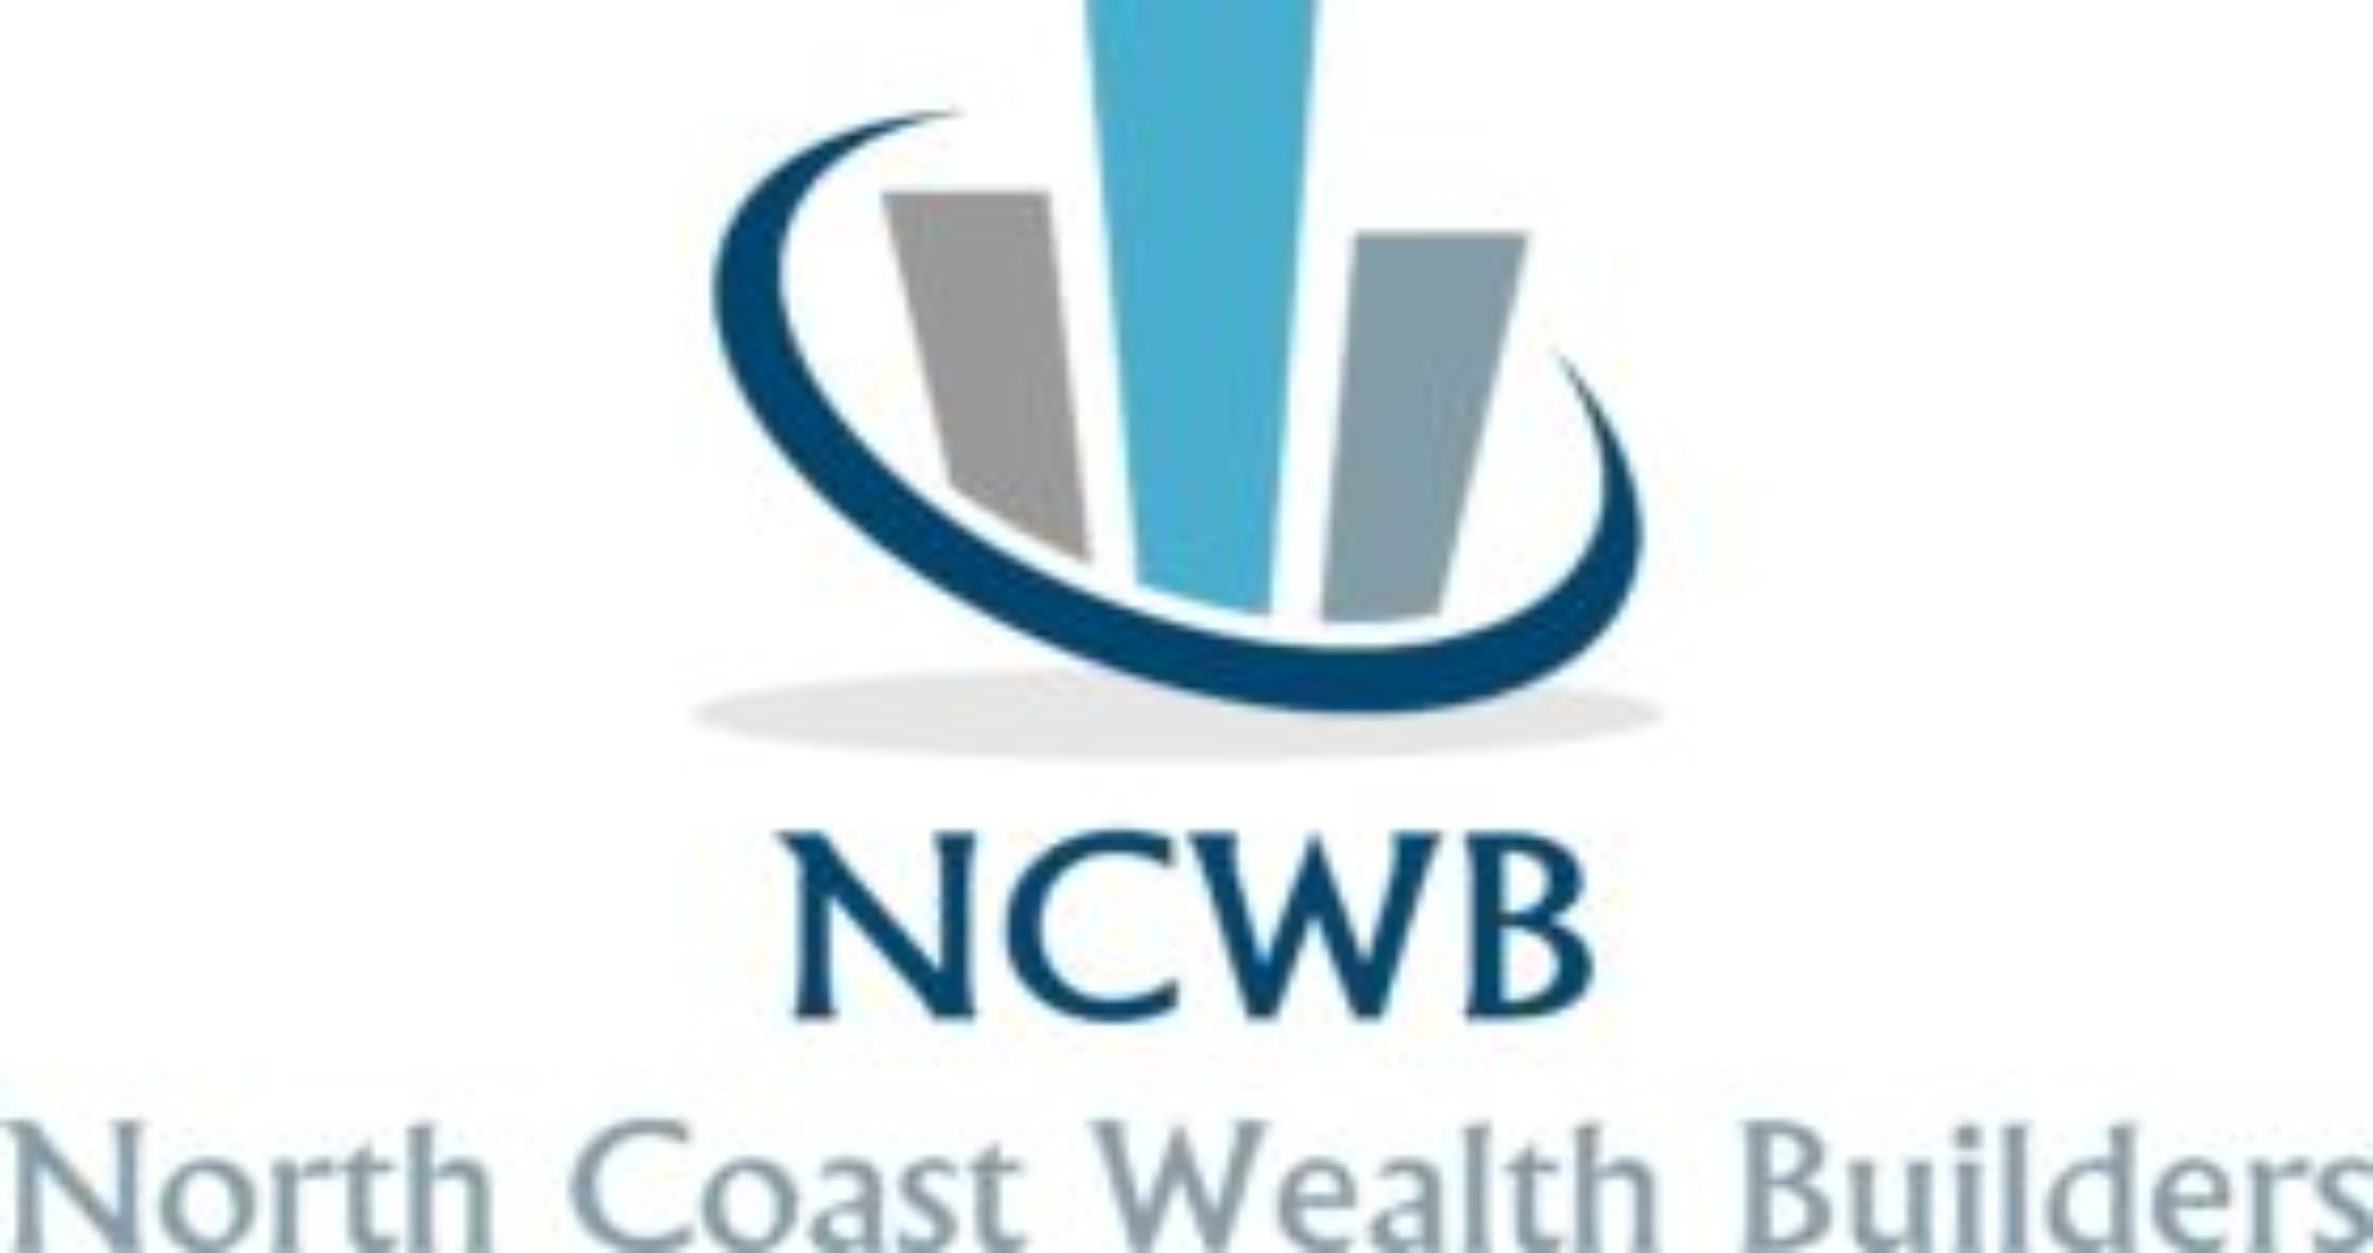 North Coast Wealth Builders